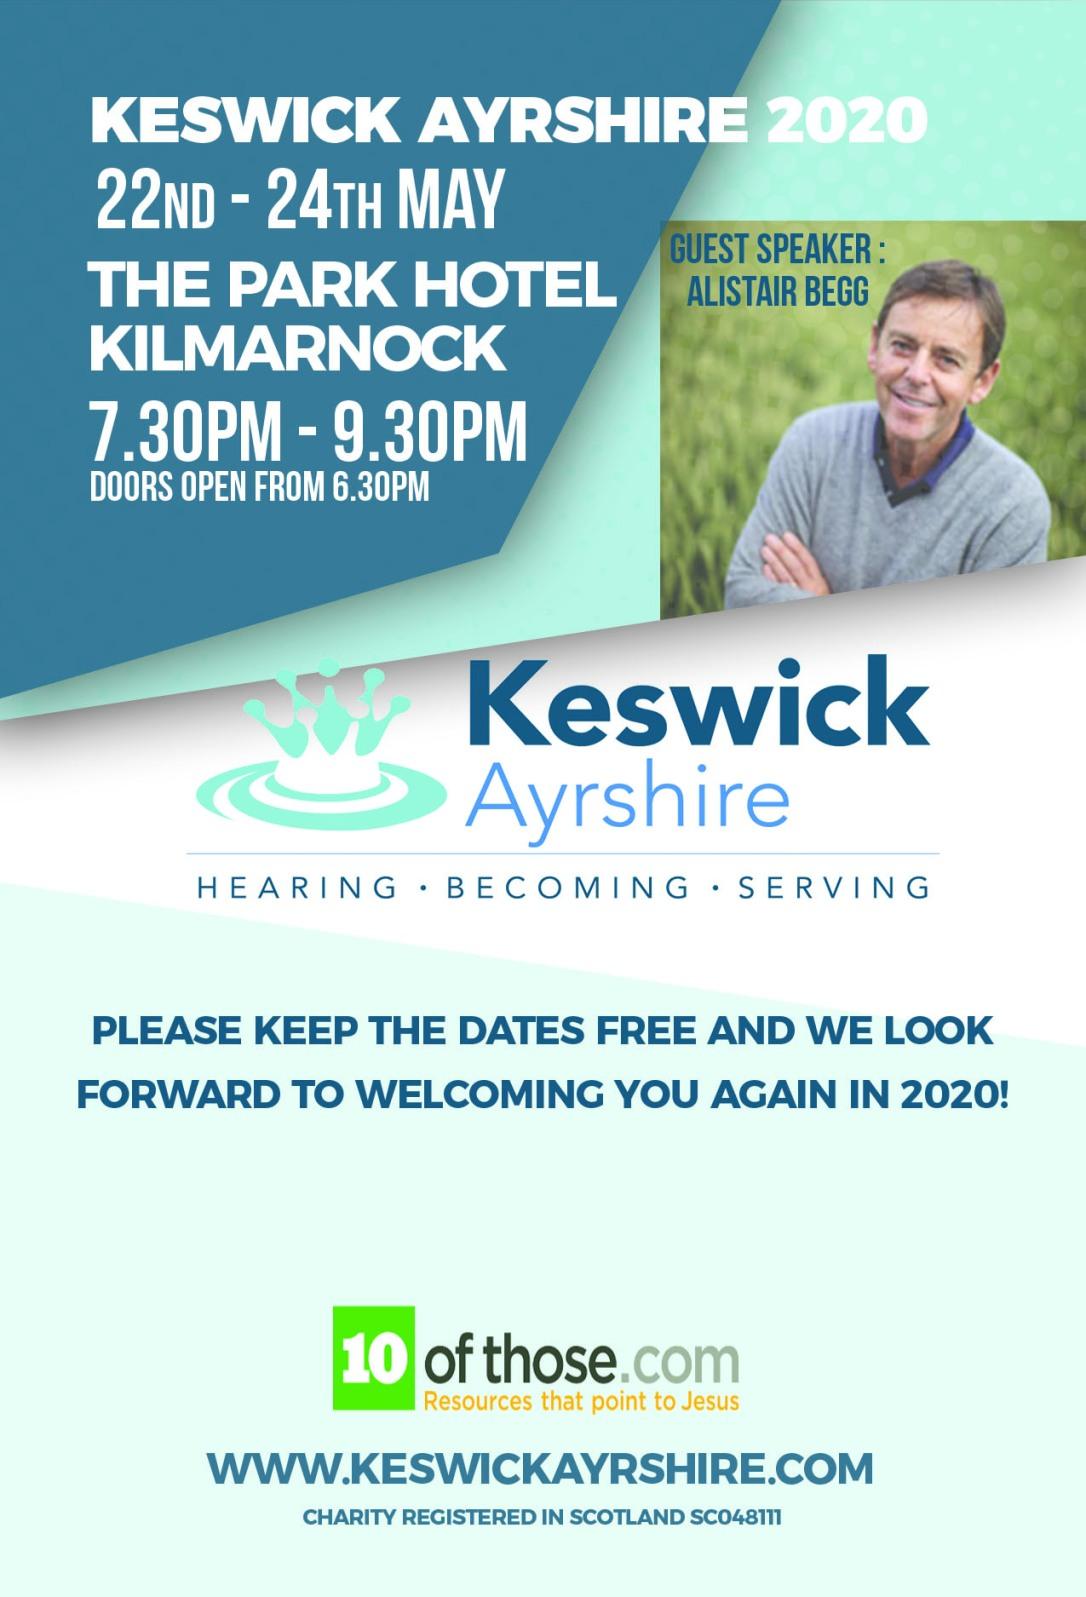 Keswick Ayrshire 2020 version 2